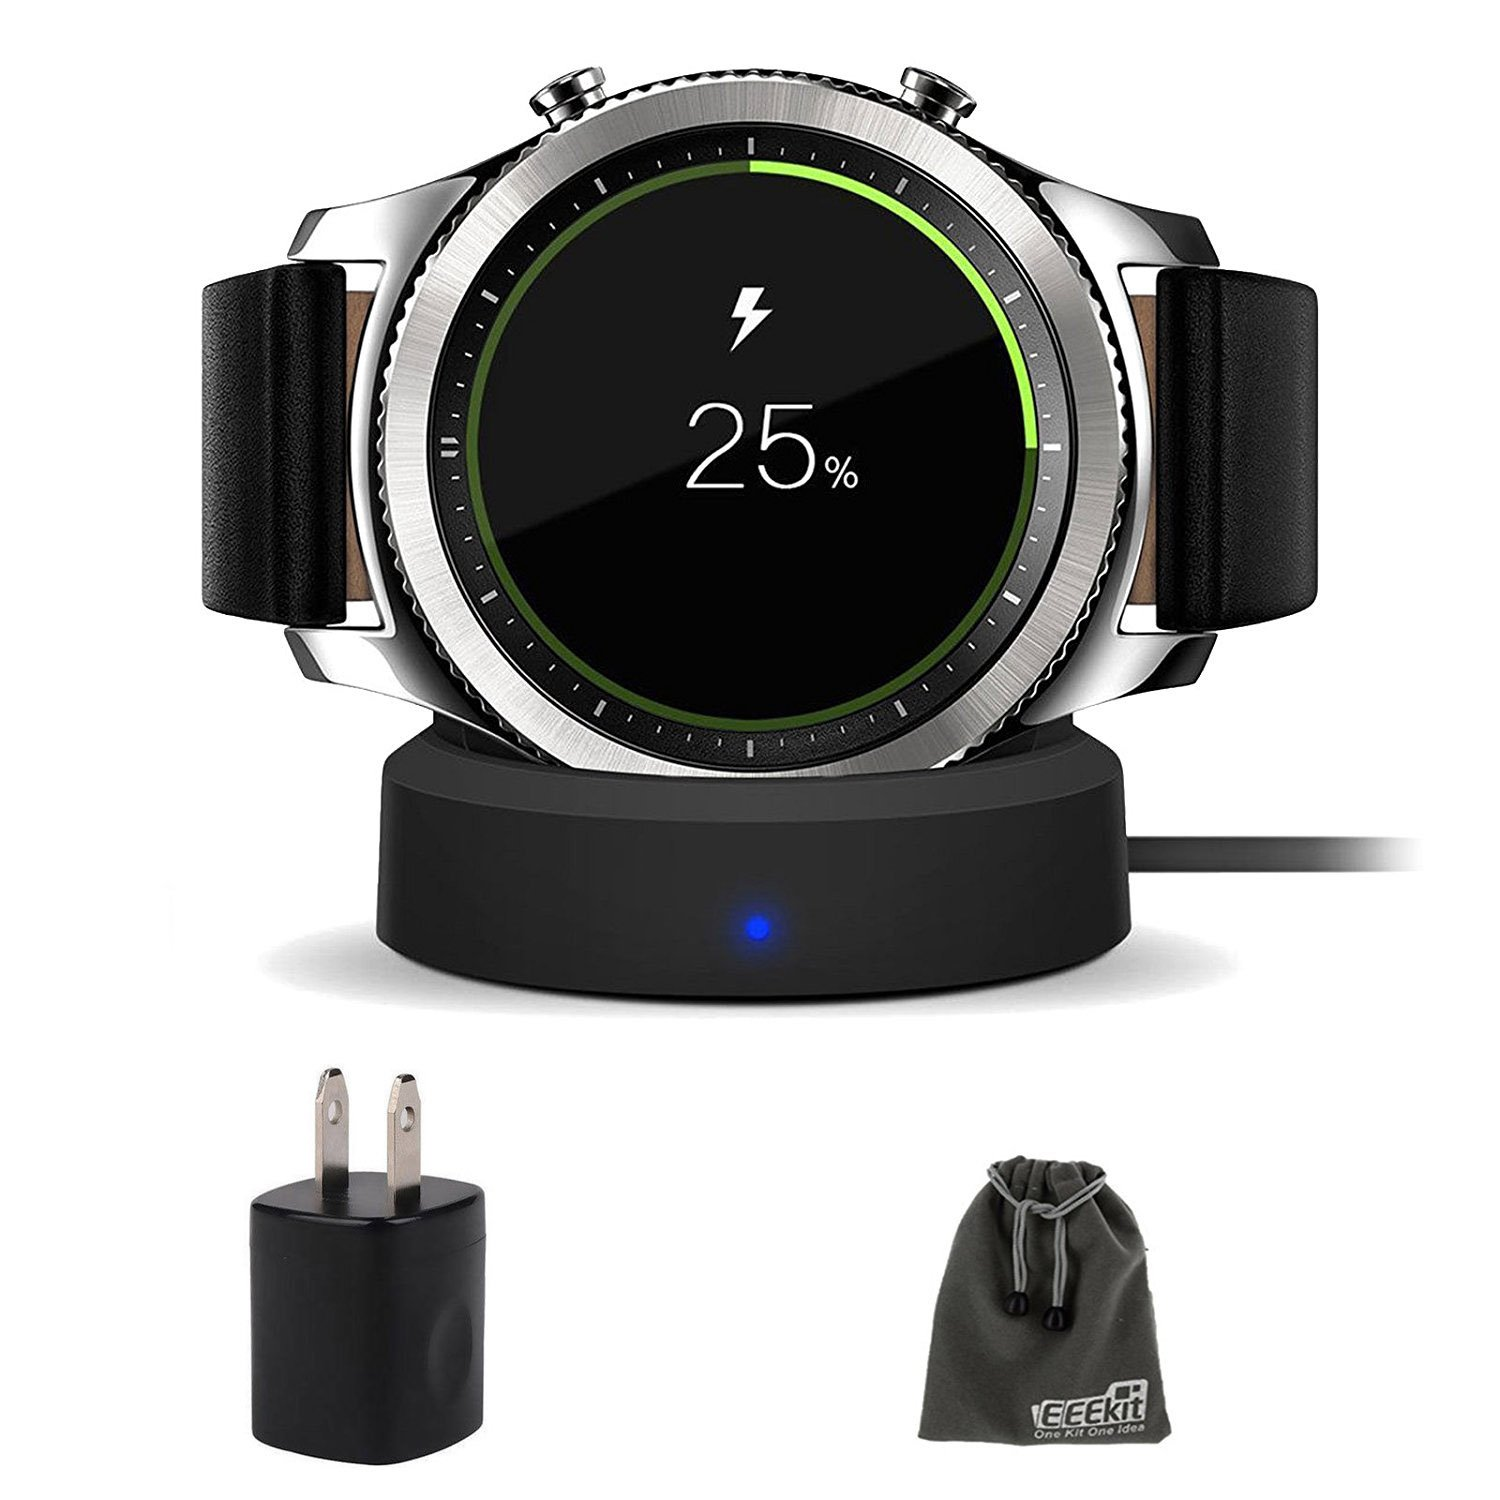 EEEKit Galaxy Gear S3 Charger, Qi Wireless Replacement Charging Dock Cradle Stand Charger + AC Wall Charger Adapter for Samsung Gear S3 Classic/Frontier Smart Watch